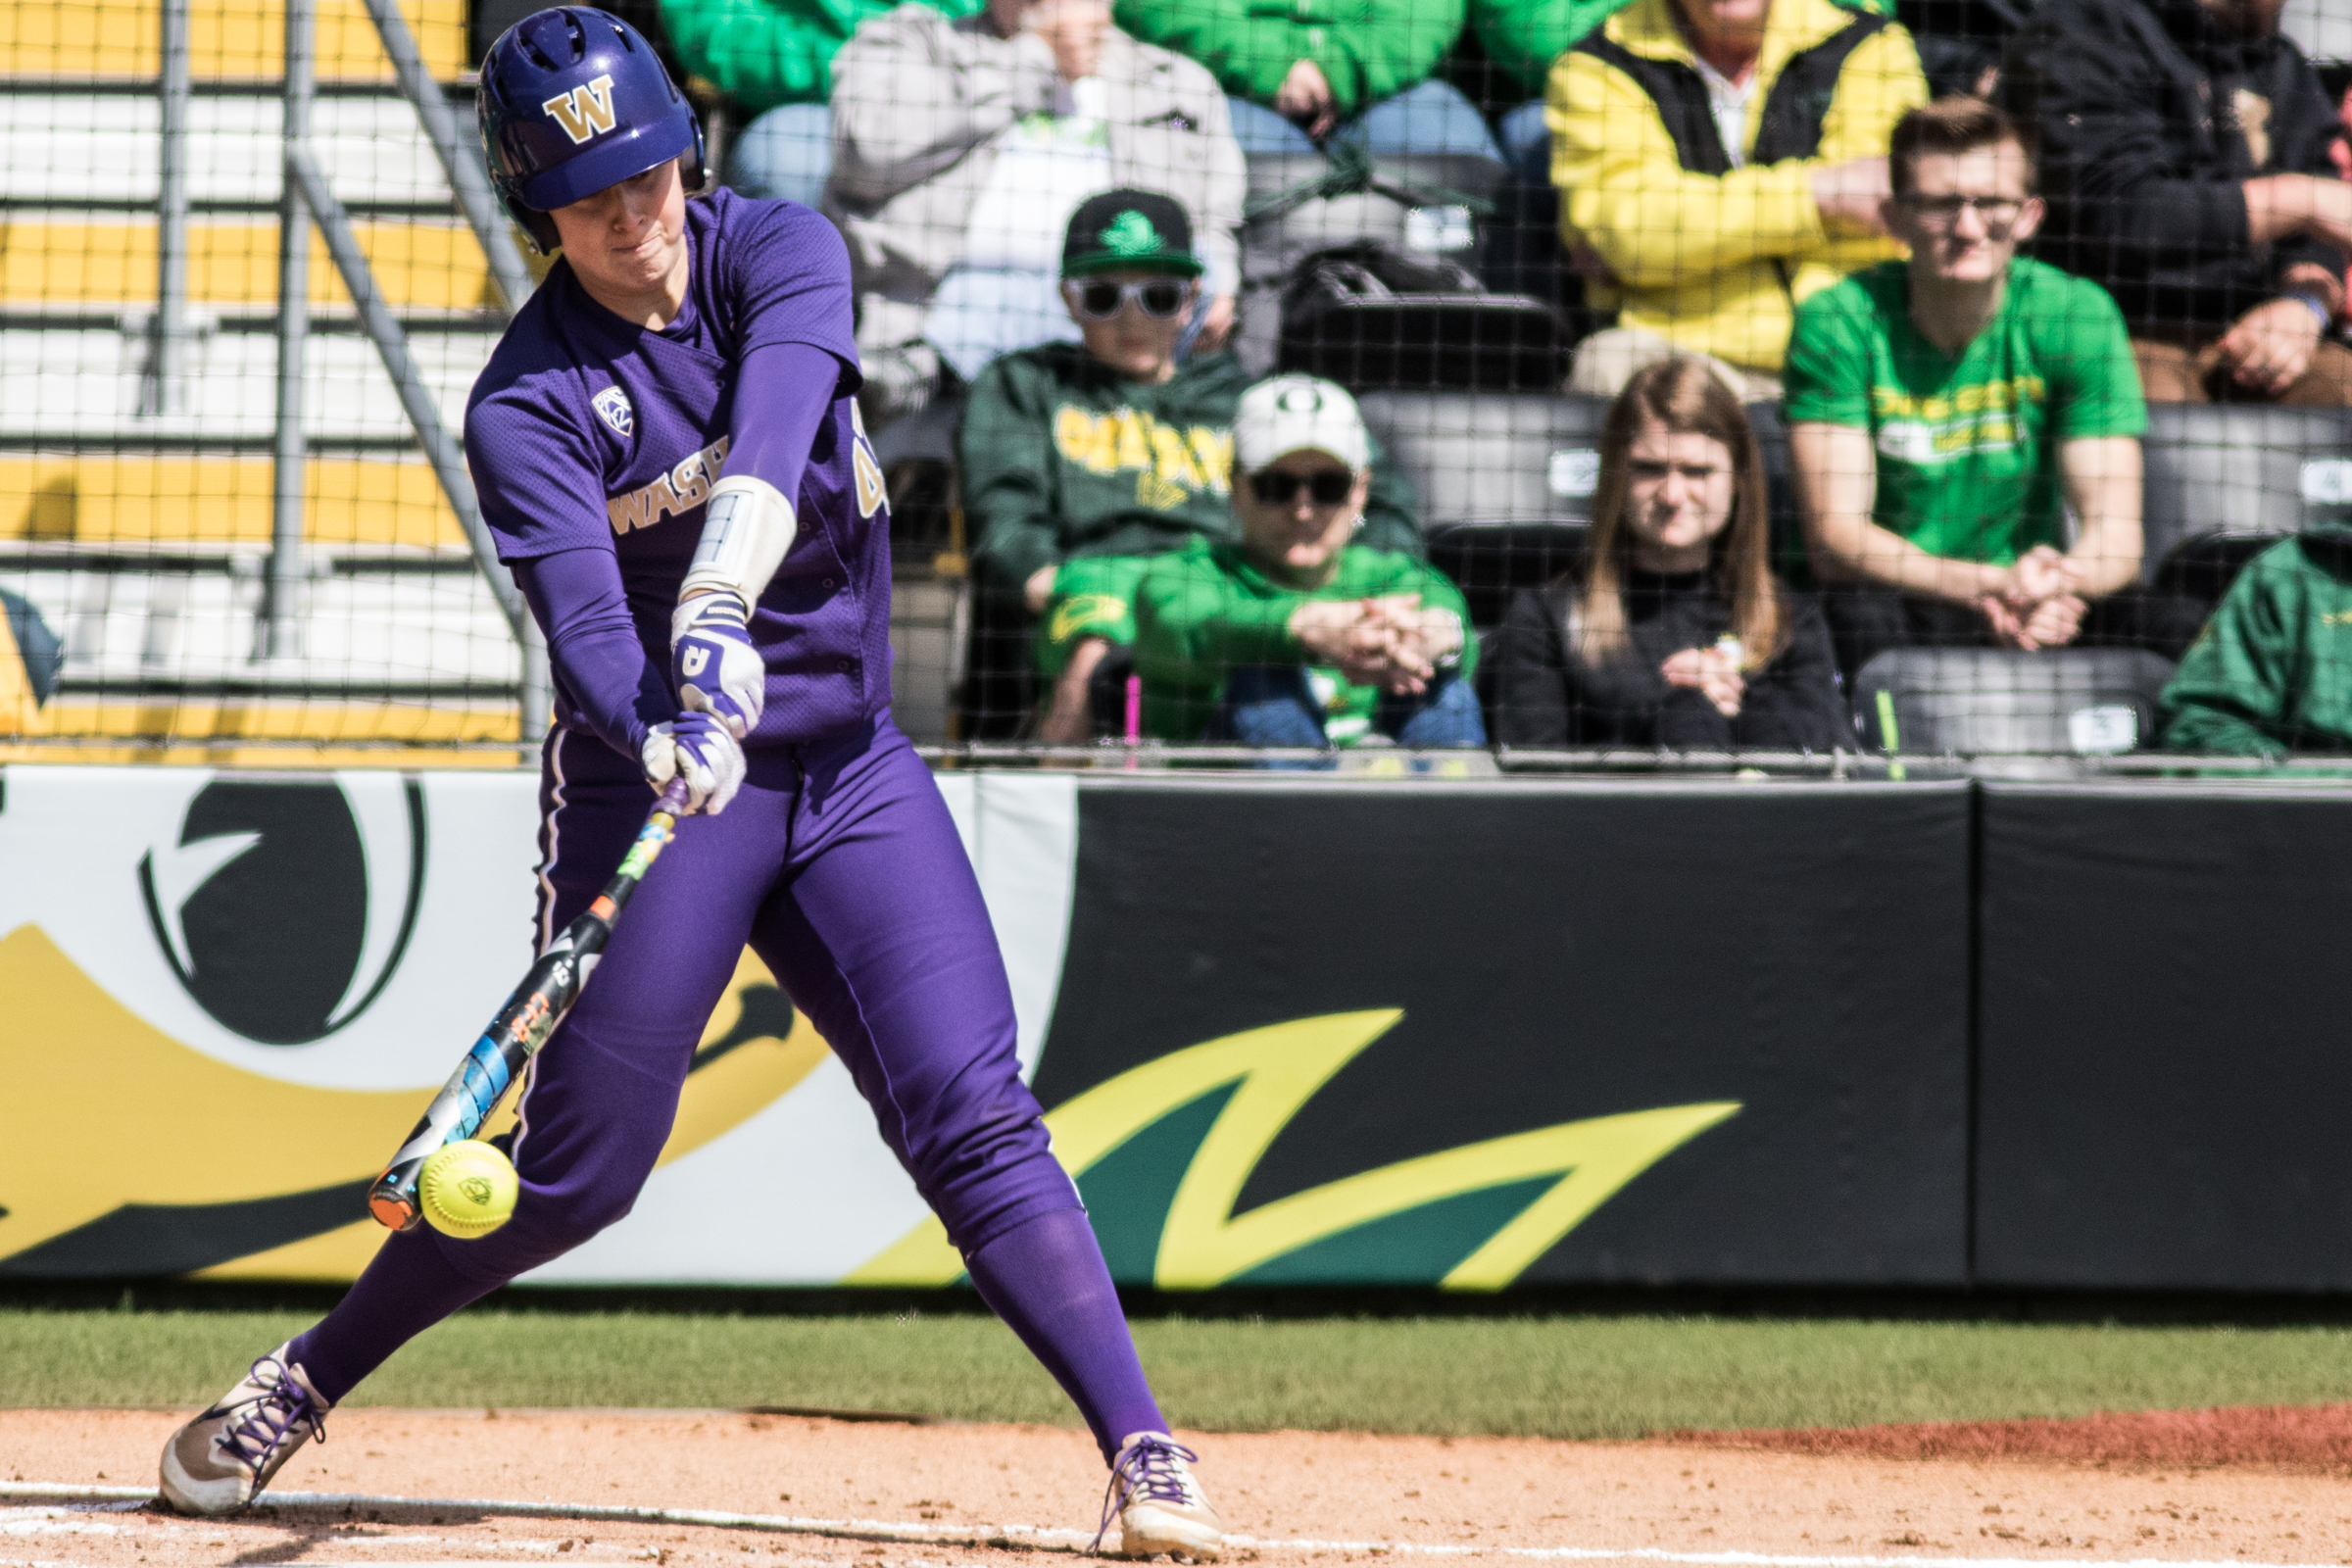 Washington Huskies catcher Morganne Flores (#47) makes contact with a pitch. In the final game of a three-game series, the University of Washington Huskies defeated the Oregon Ducks 5-3.  The Ducks led through the bottom of the 7th inning, but Washington's Morganne Flores (#47) tied it up with a two-run double.  Flores drove in two more runs in the 9th to take the lead.  Photo by Austin Hicks, Oregon News Lab